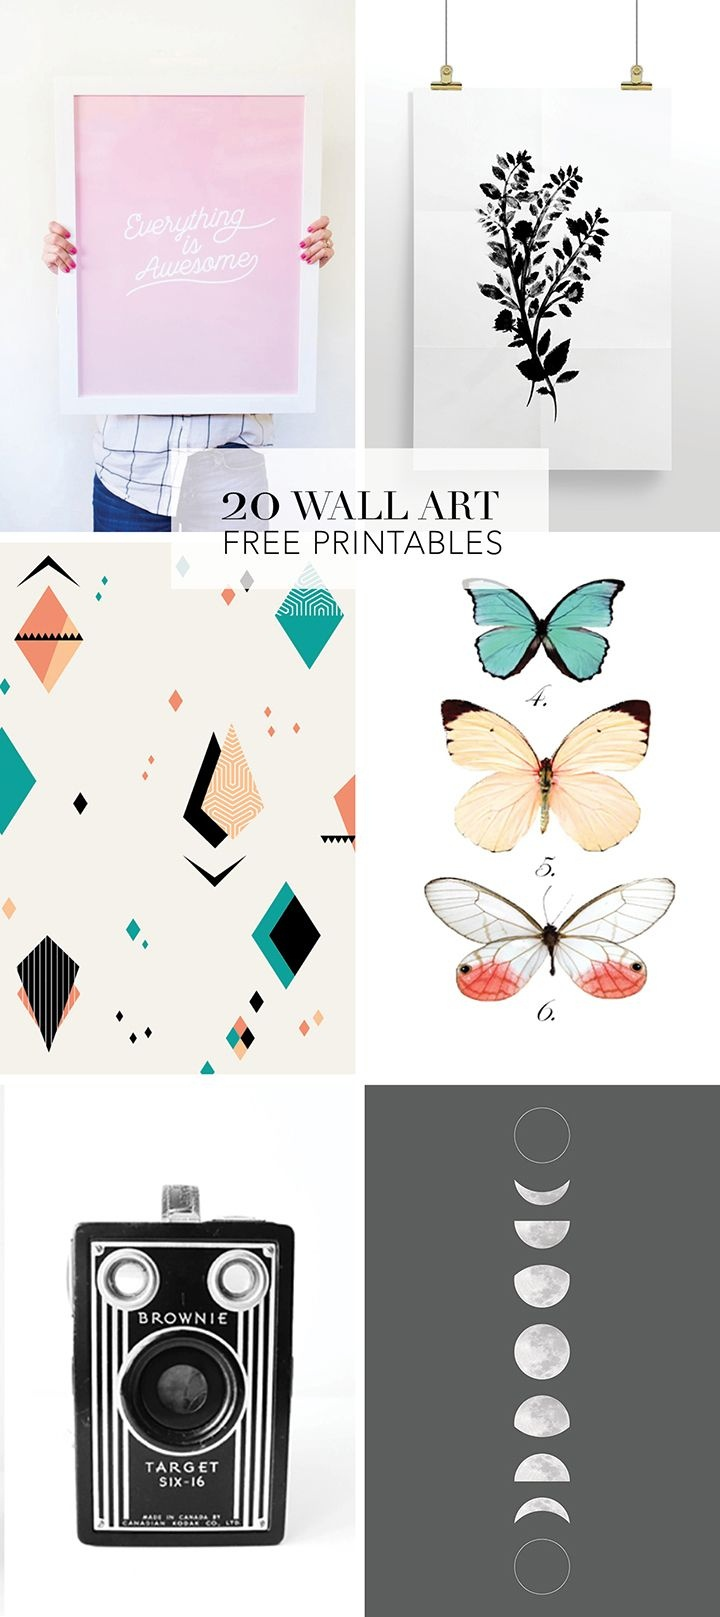 20 Favorite Wall Art Free Printables | Diy Wall Decor | Printable - Free Printable Art Pictures